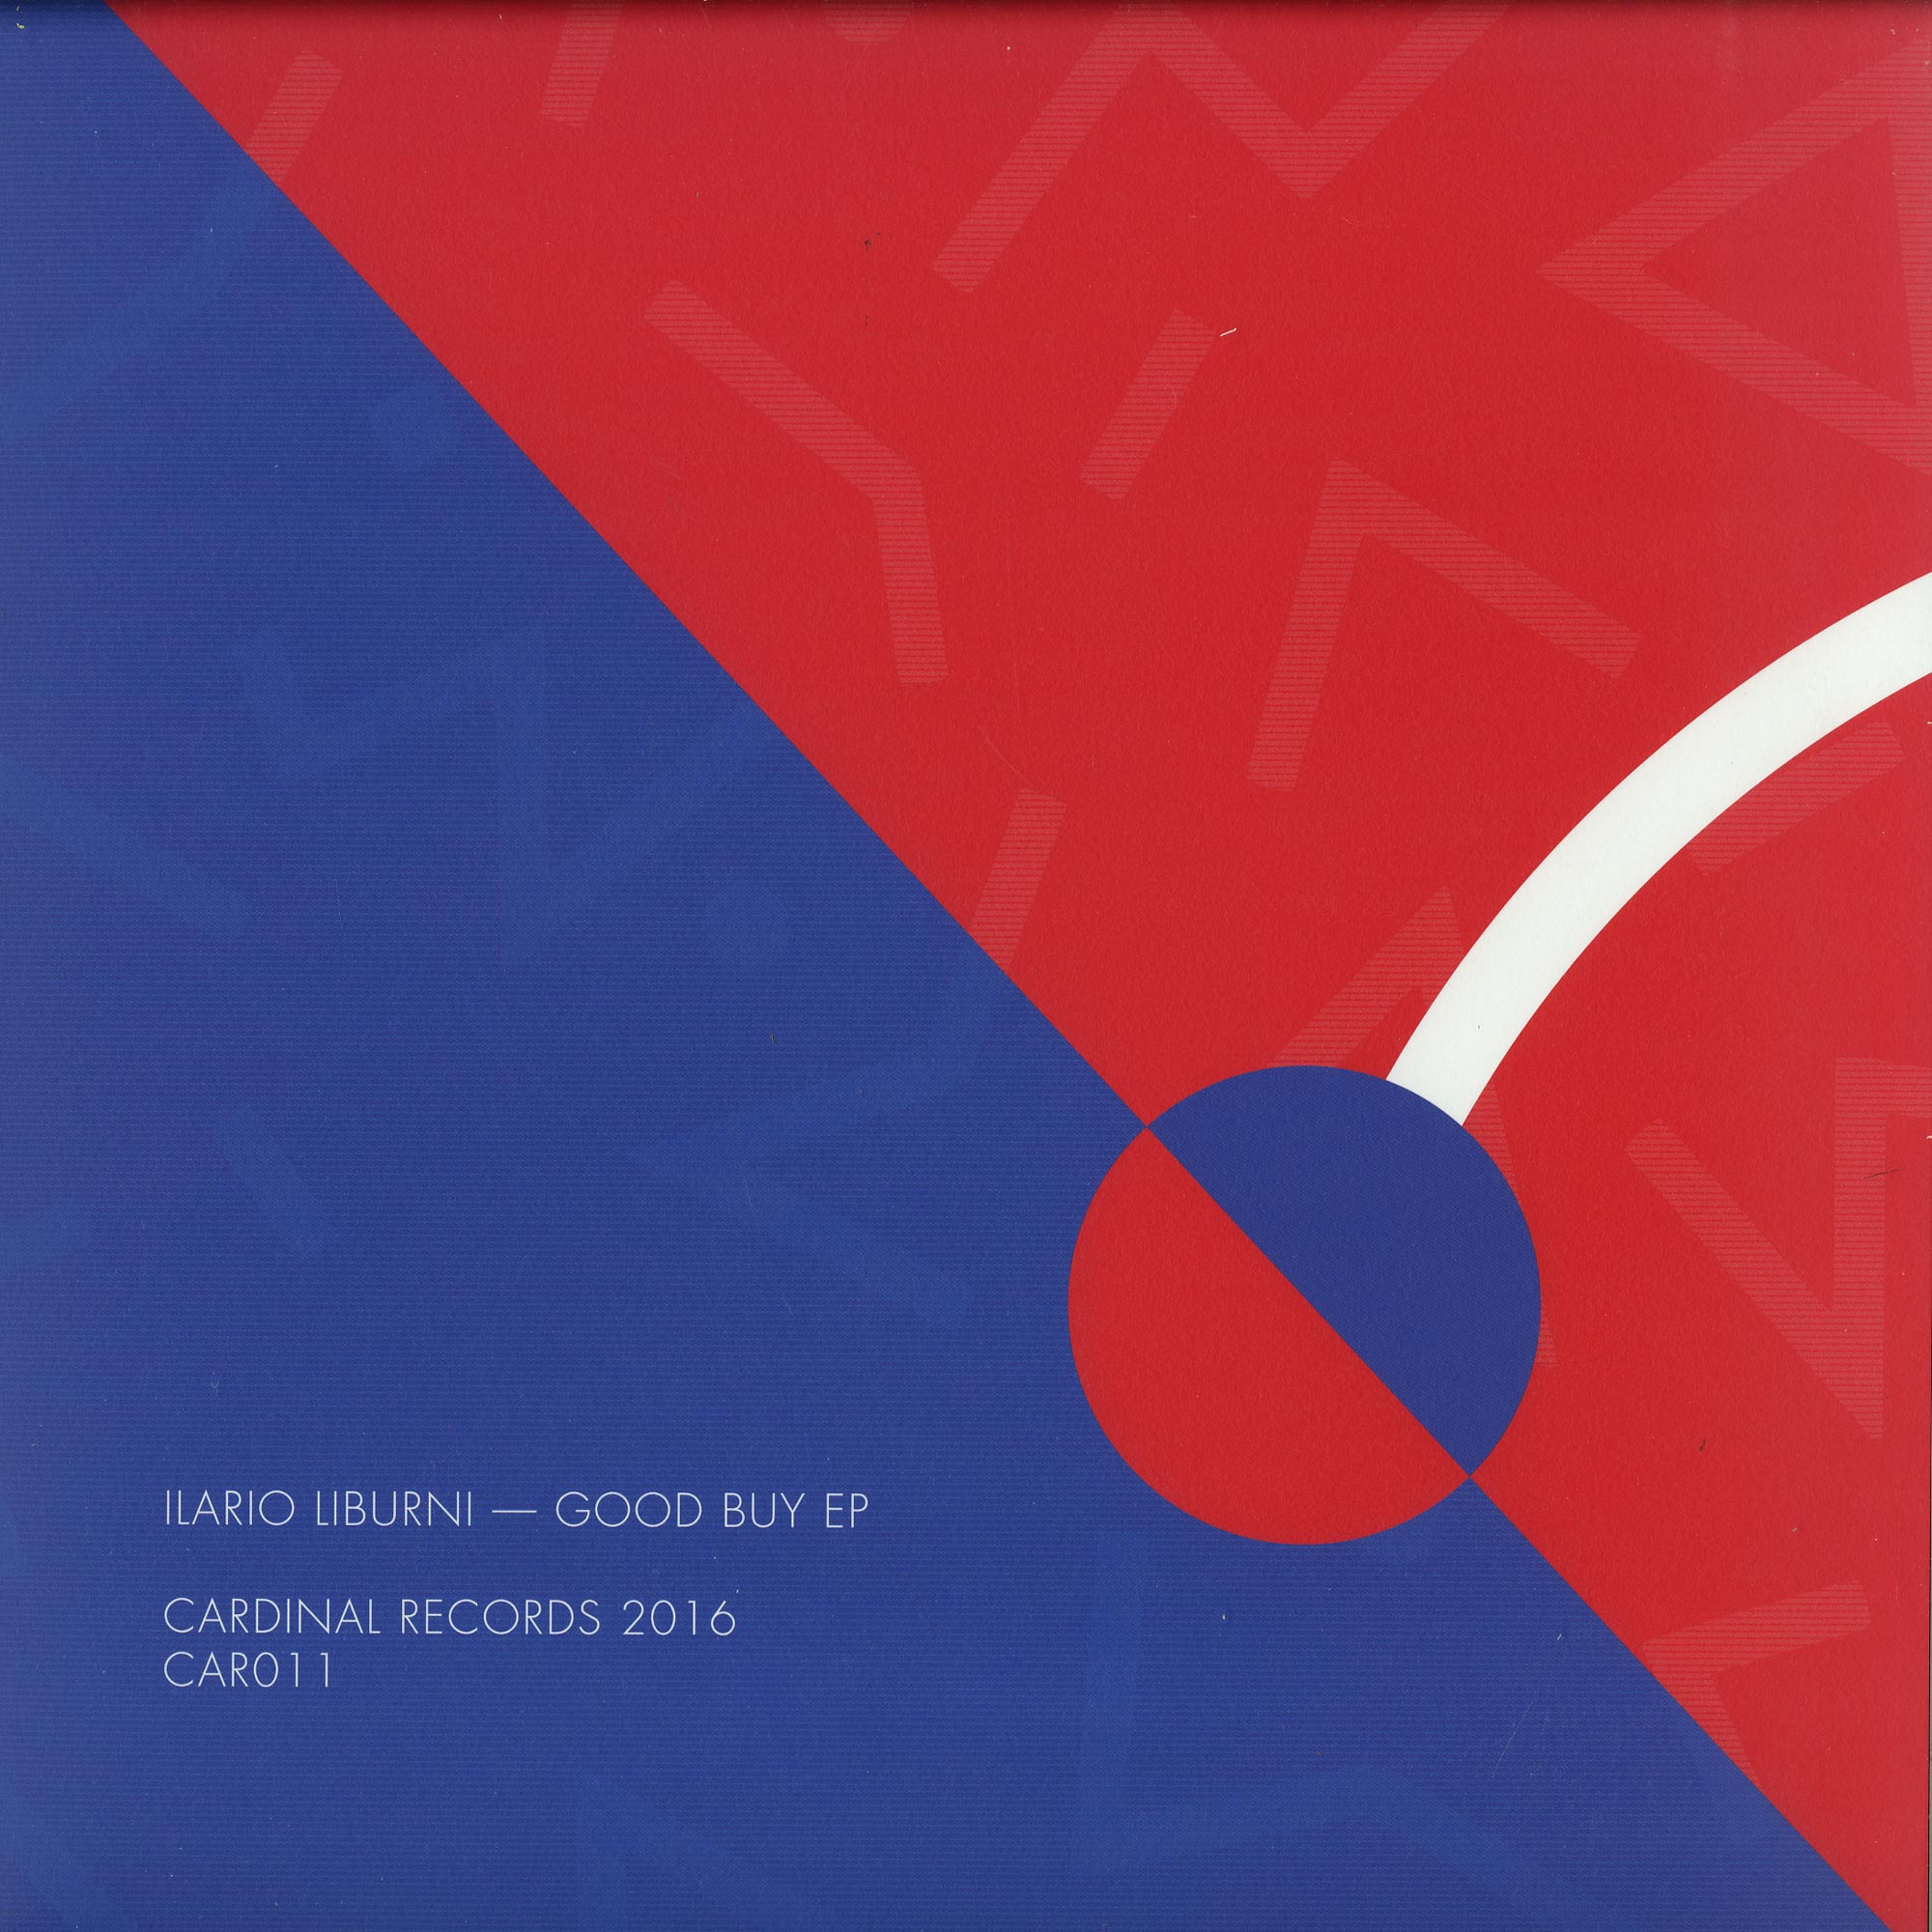 Ilario Liburni - GOOD BUY EP